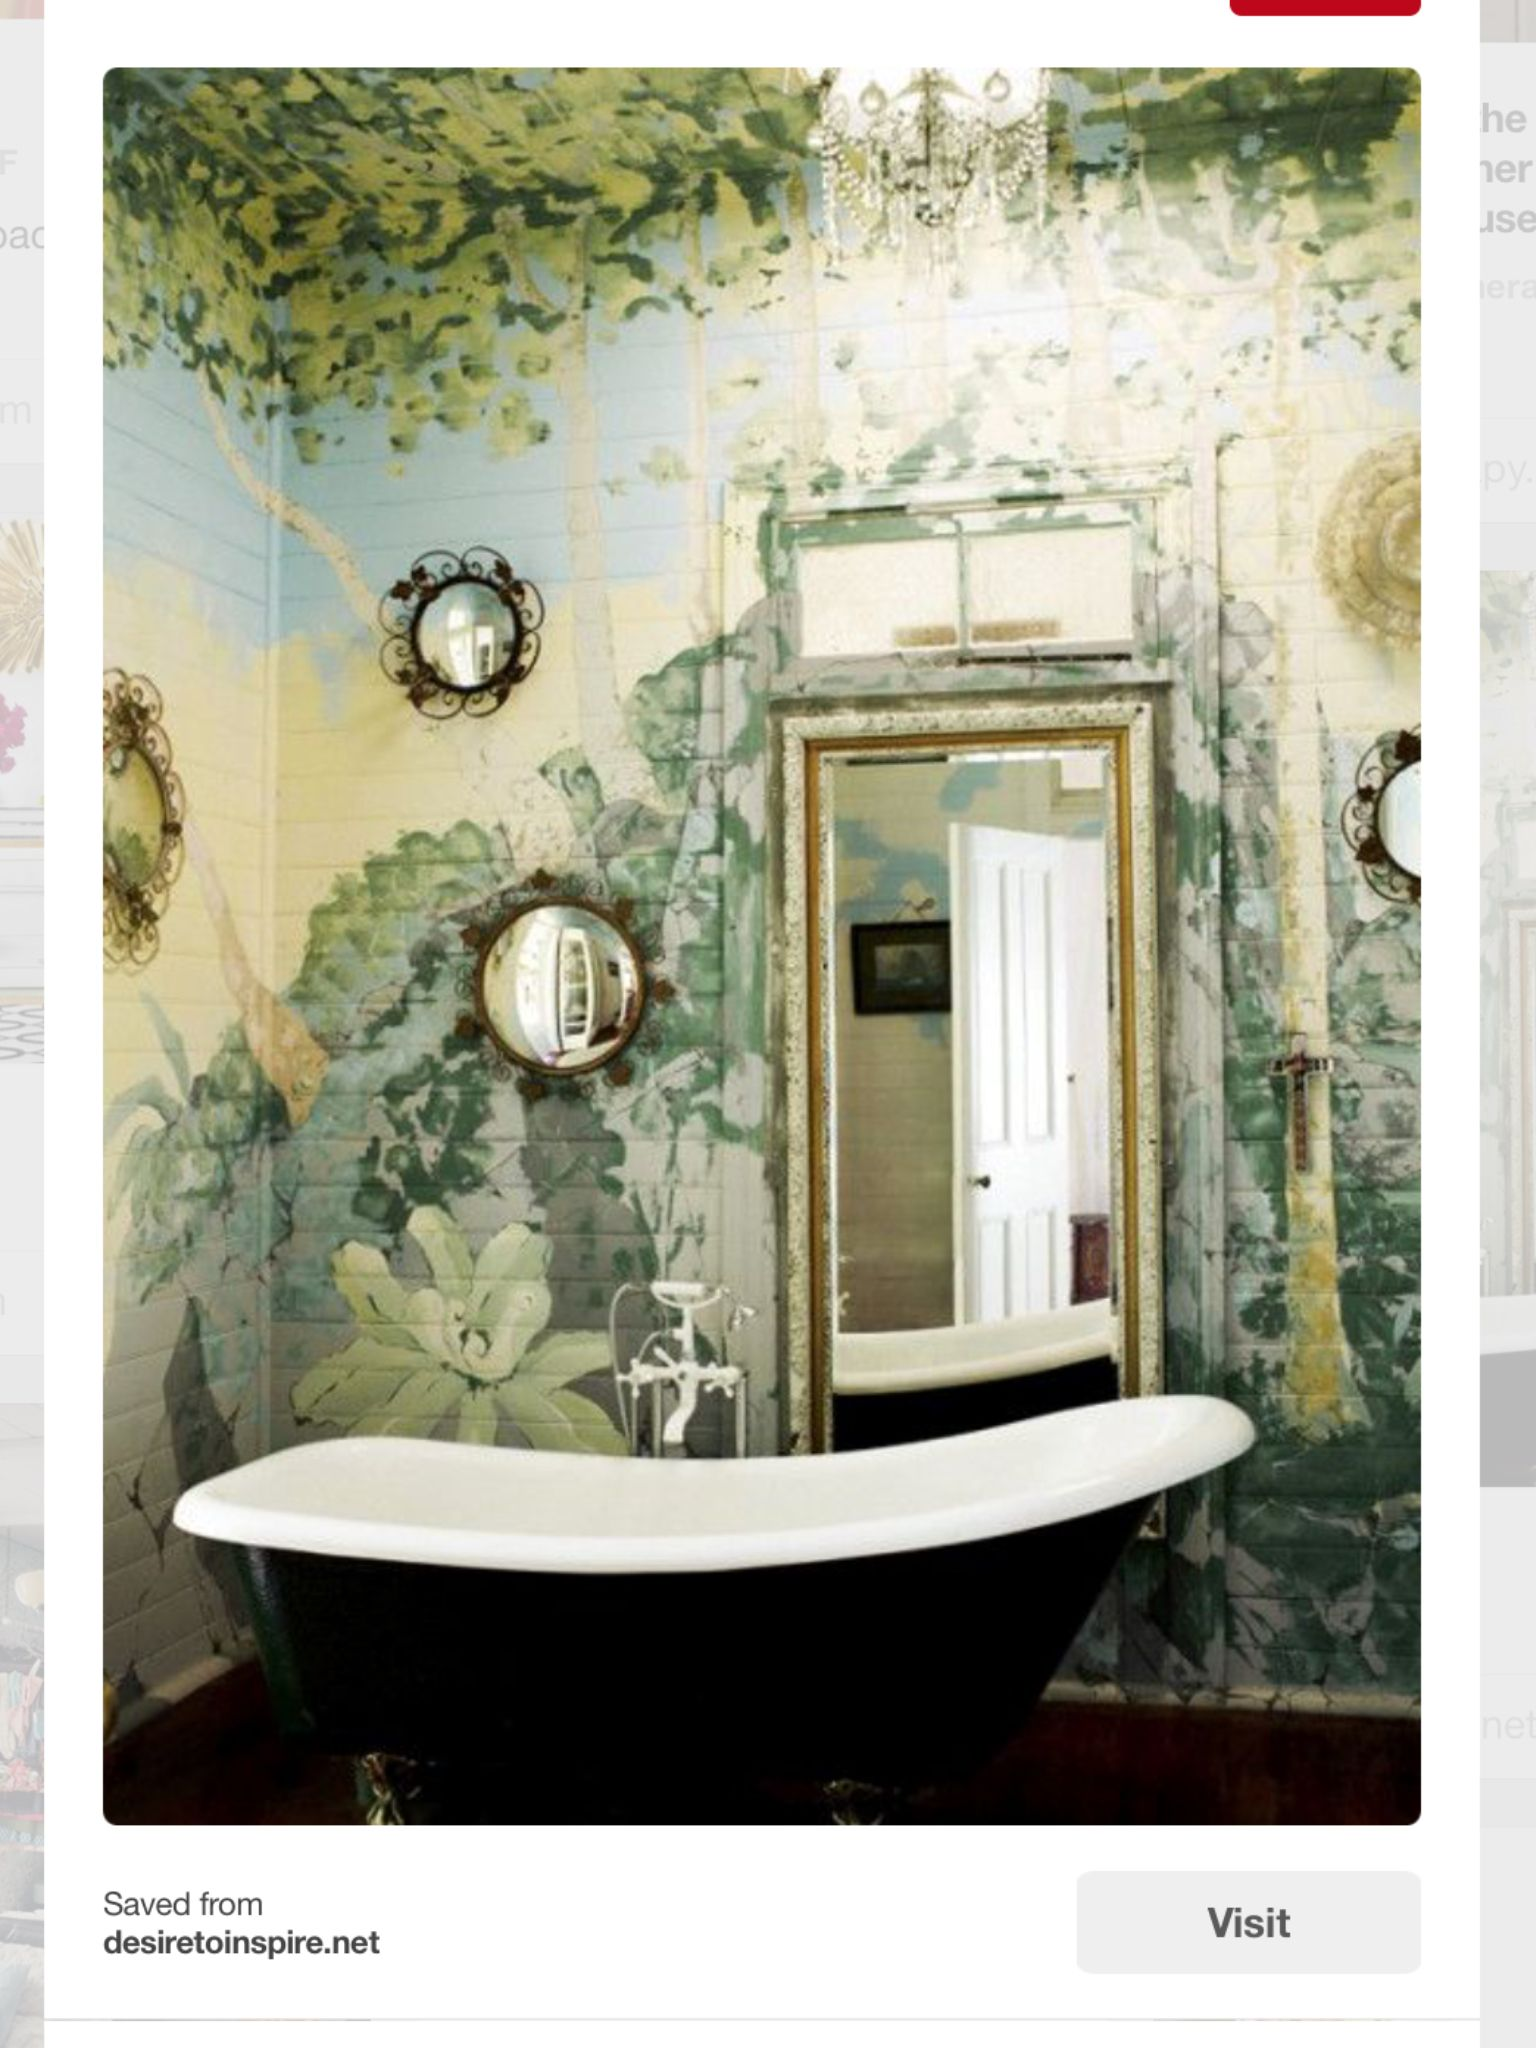 Vintage bathroom interior pin by priscilla ang on home  pinterest  minimalist interiors and